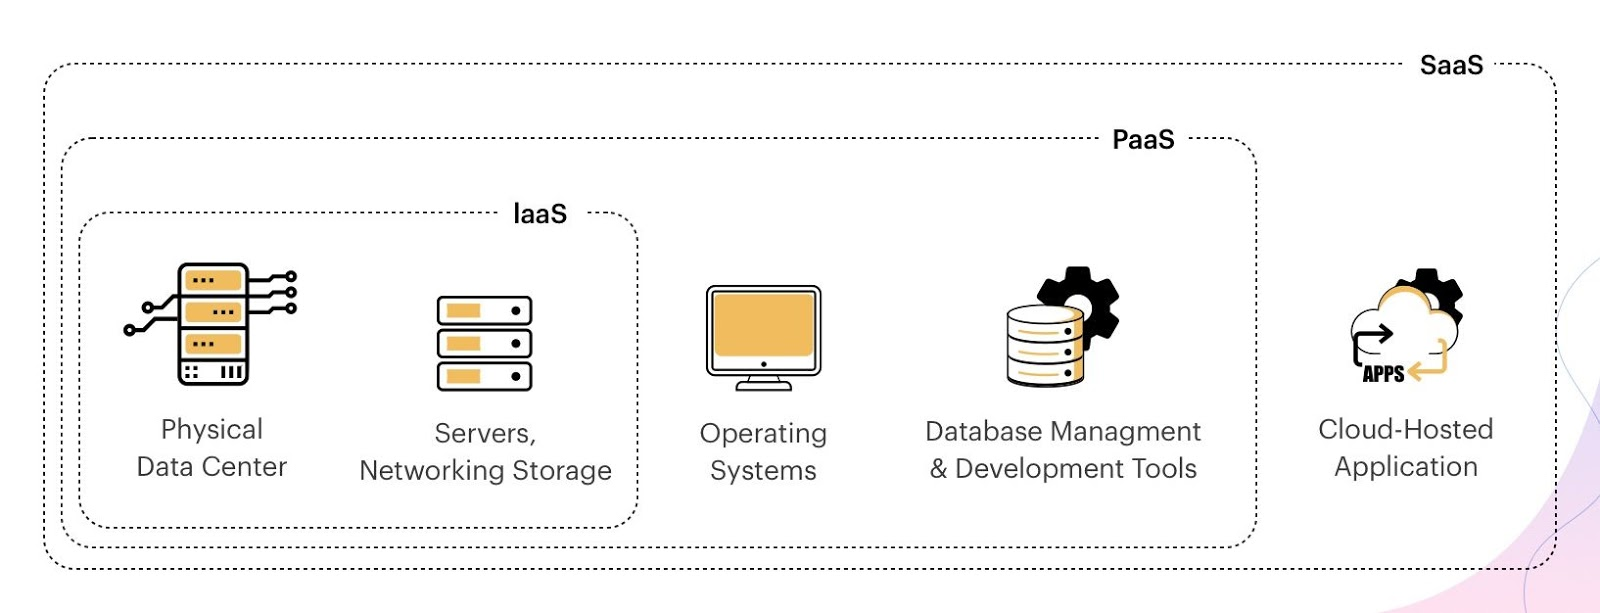 cloud services and types based on application